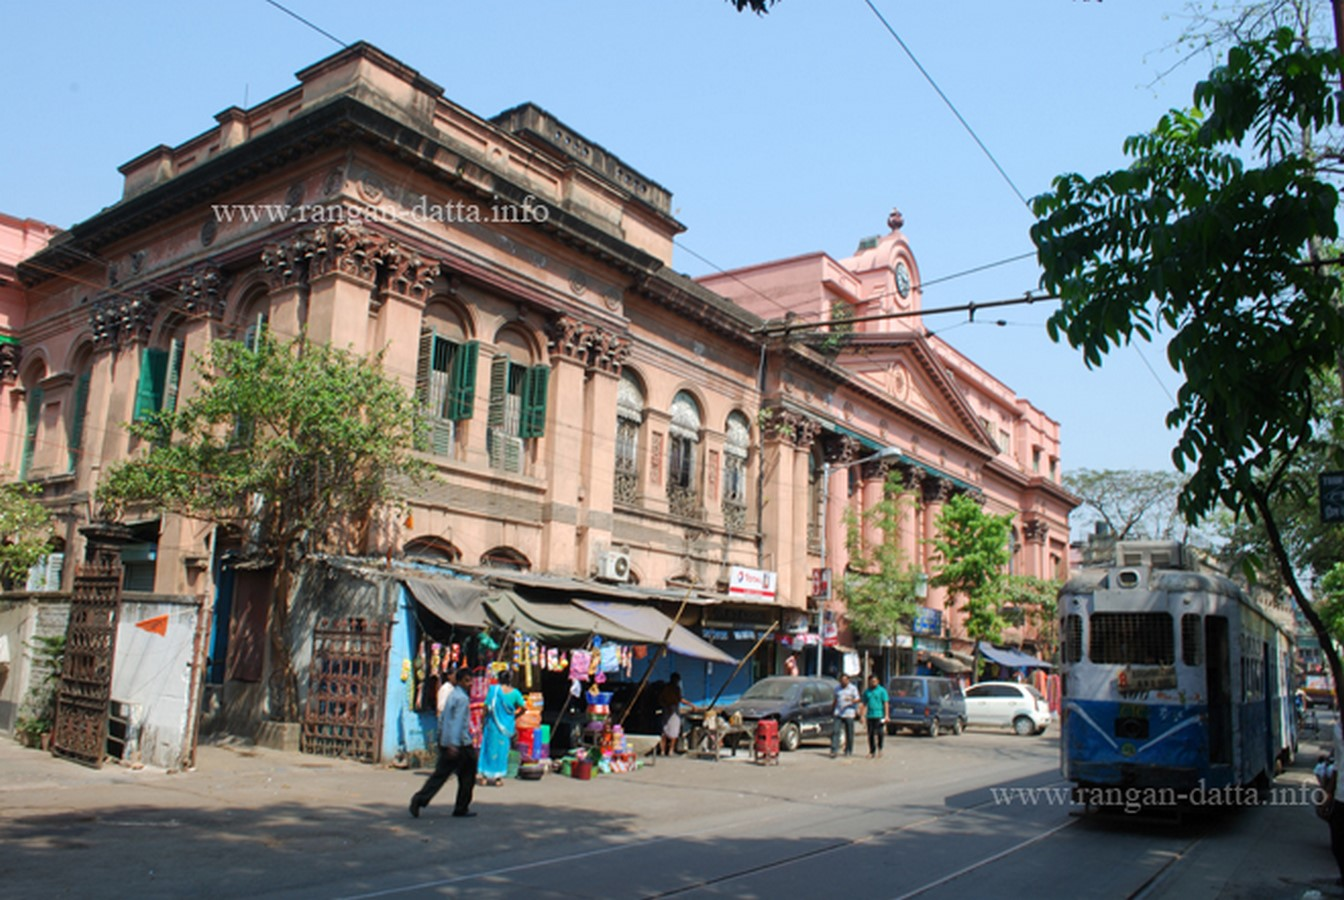 Walking through the streets of Kolkata - A visual description of Street architecture of the city - Sheet8